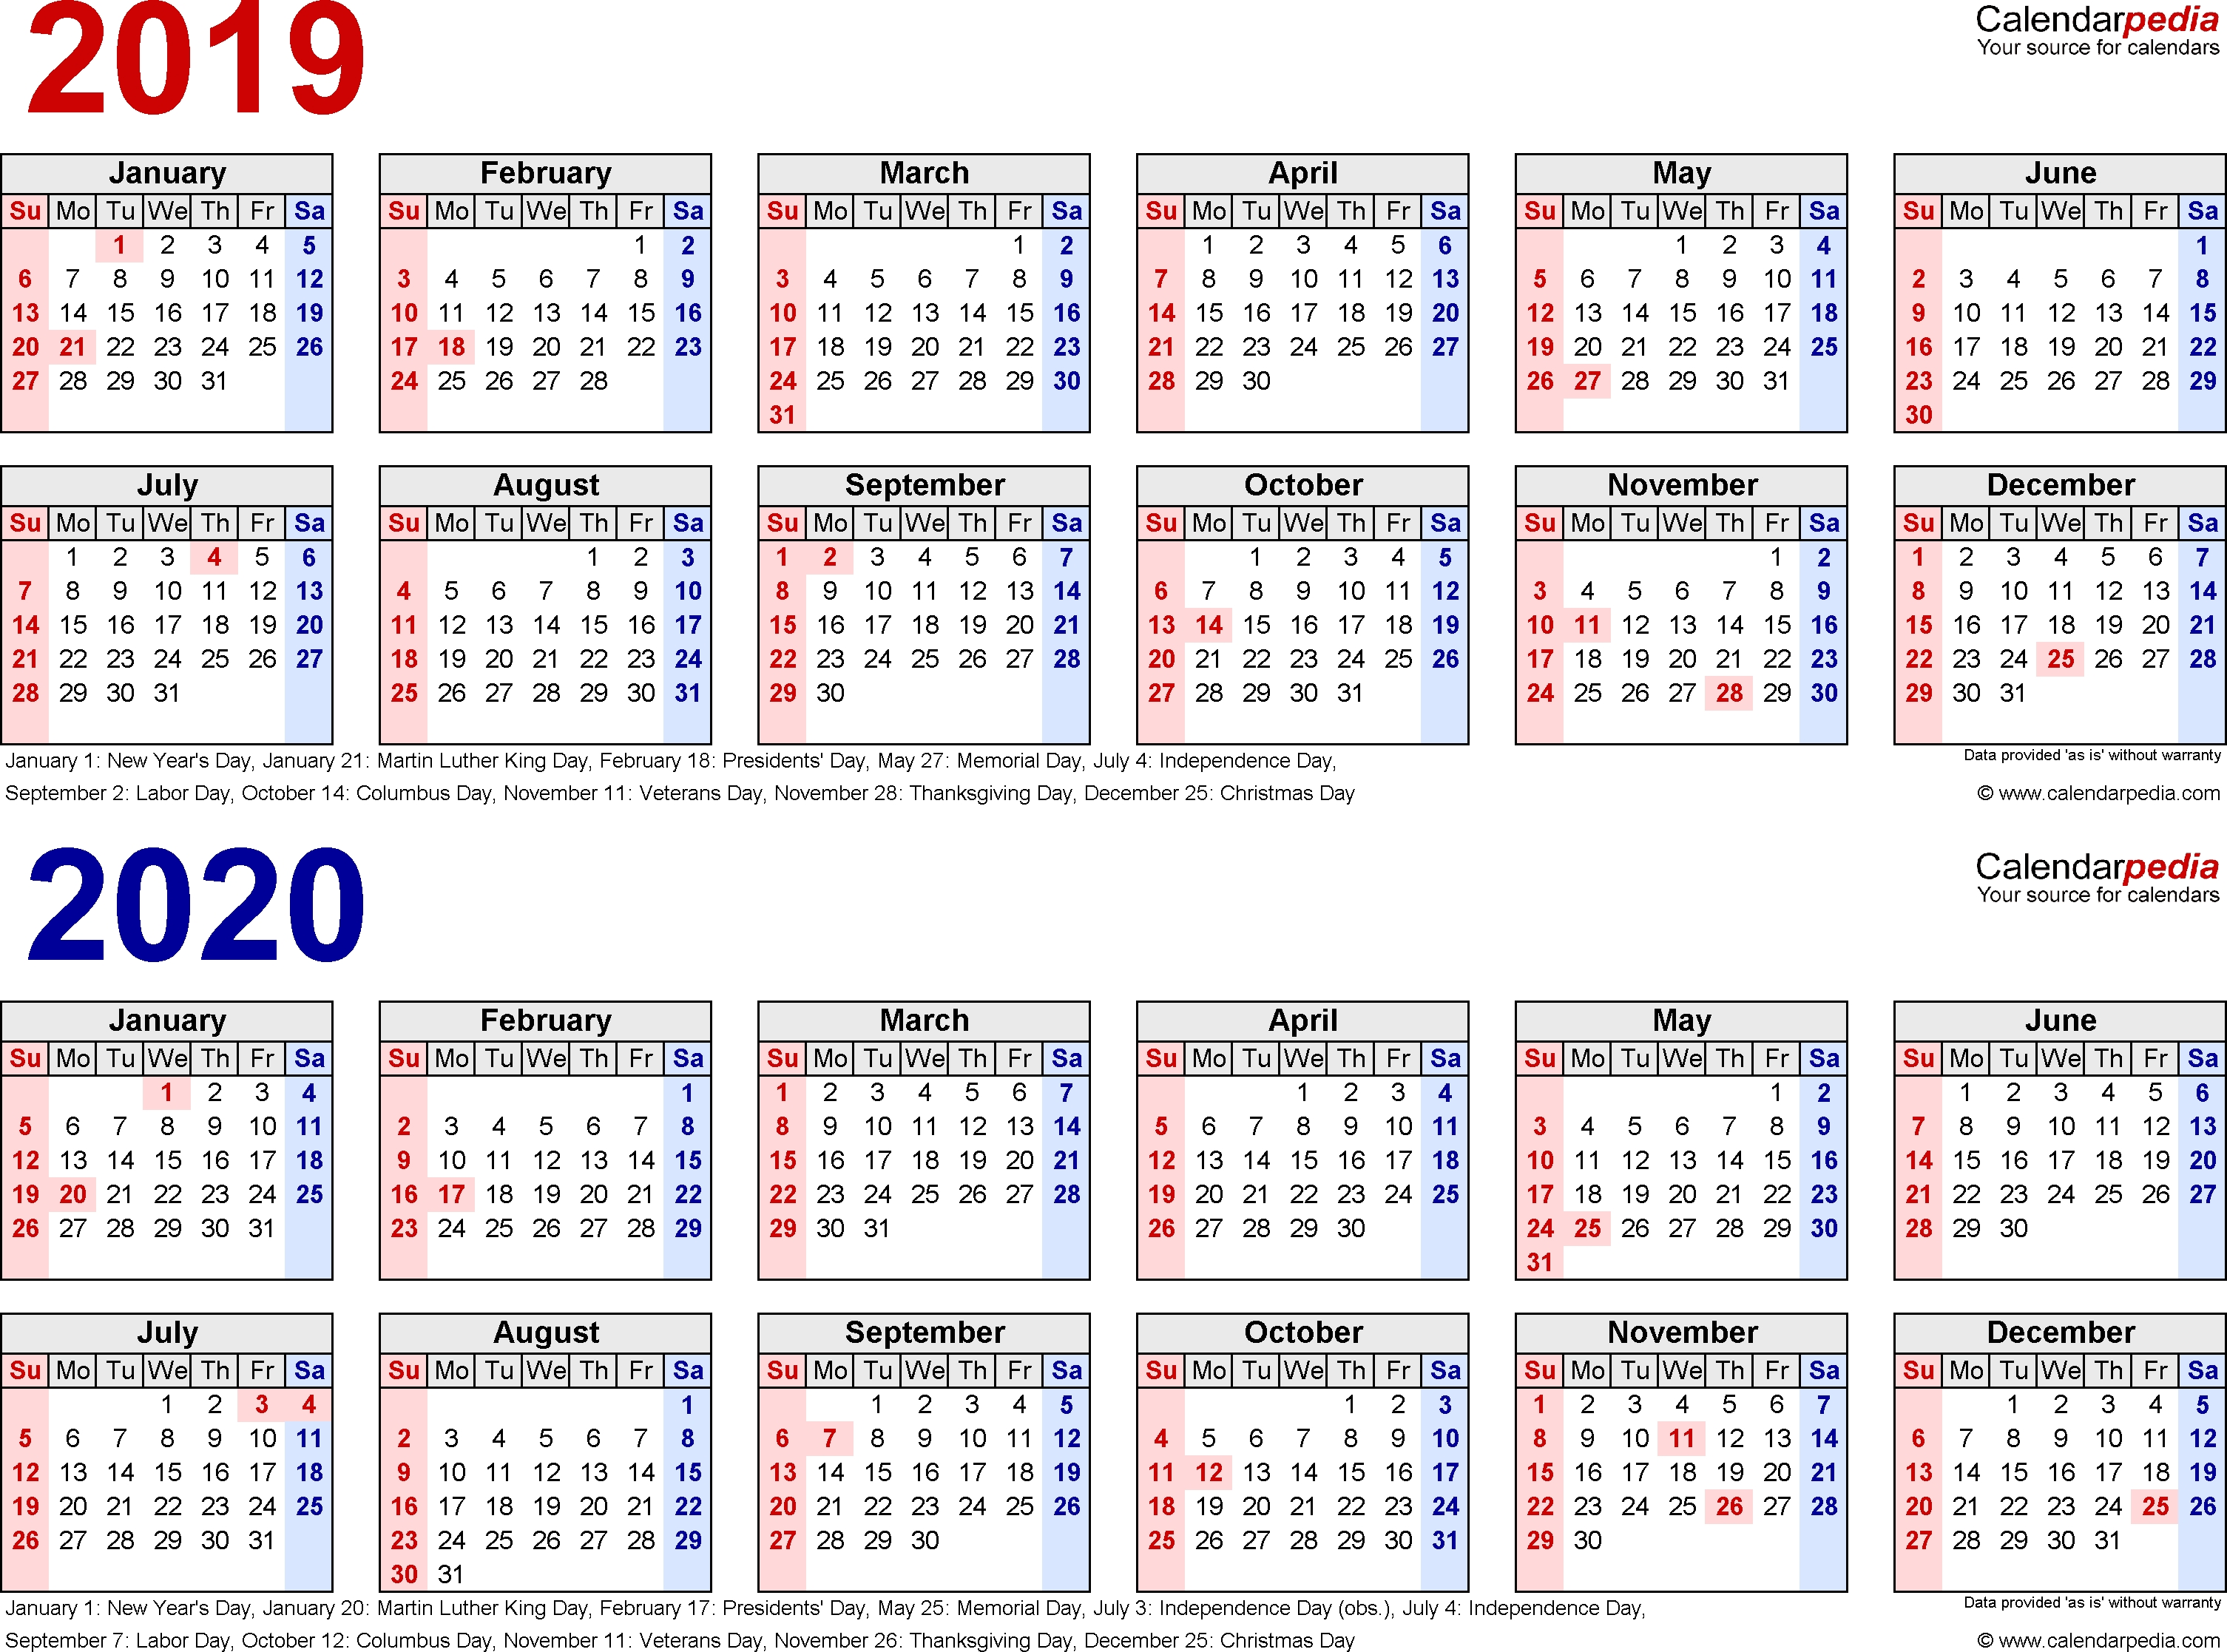 2019-2020 Calendar - Free Printable Two-Year Pdf Calendars within Printable Year At A Glance Calendar 2019-2020